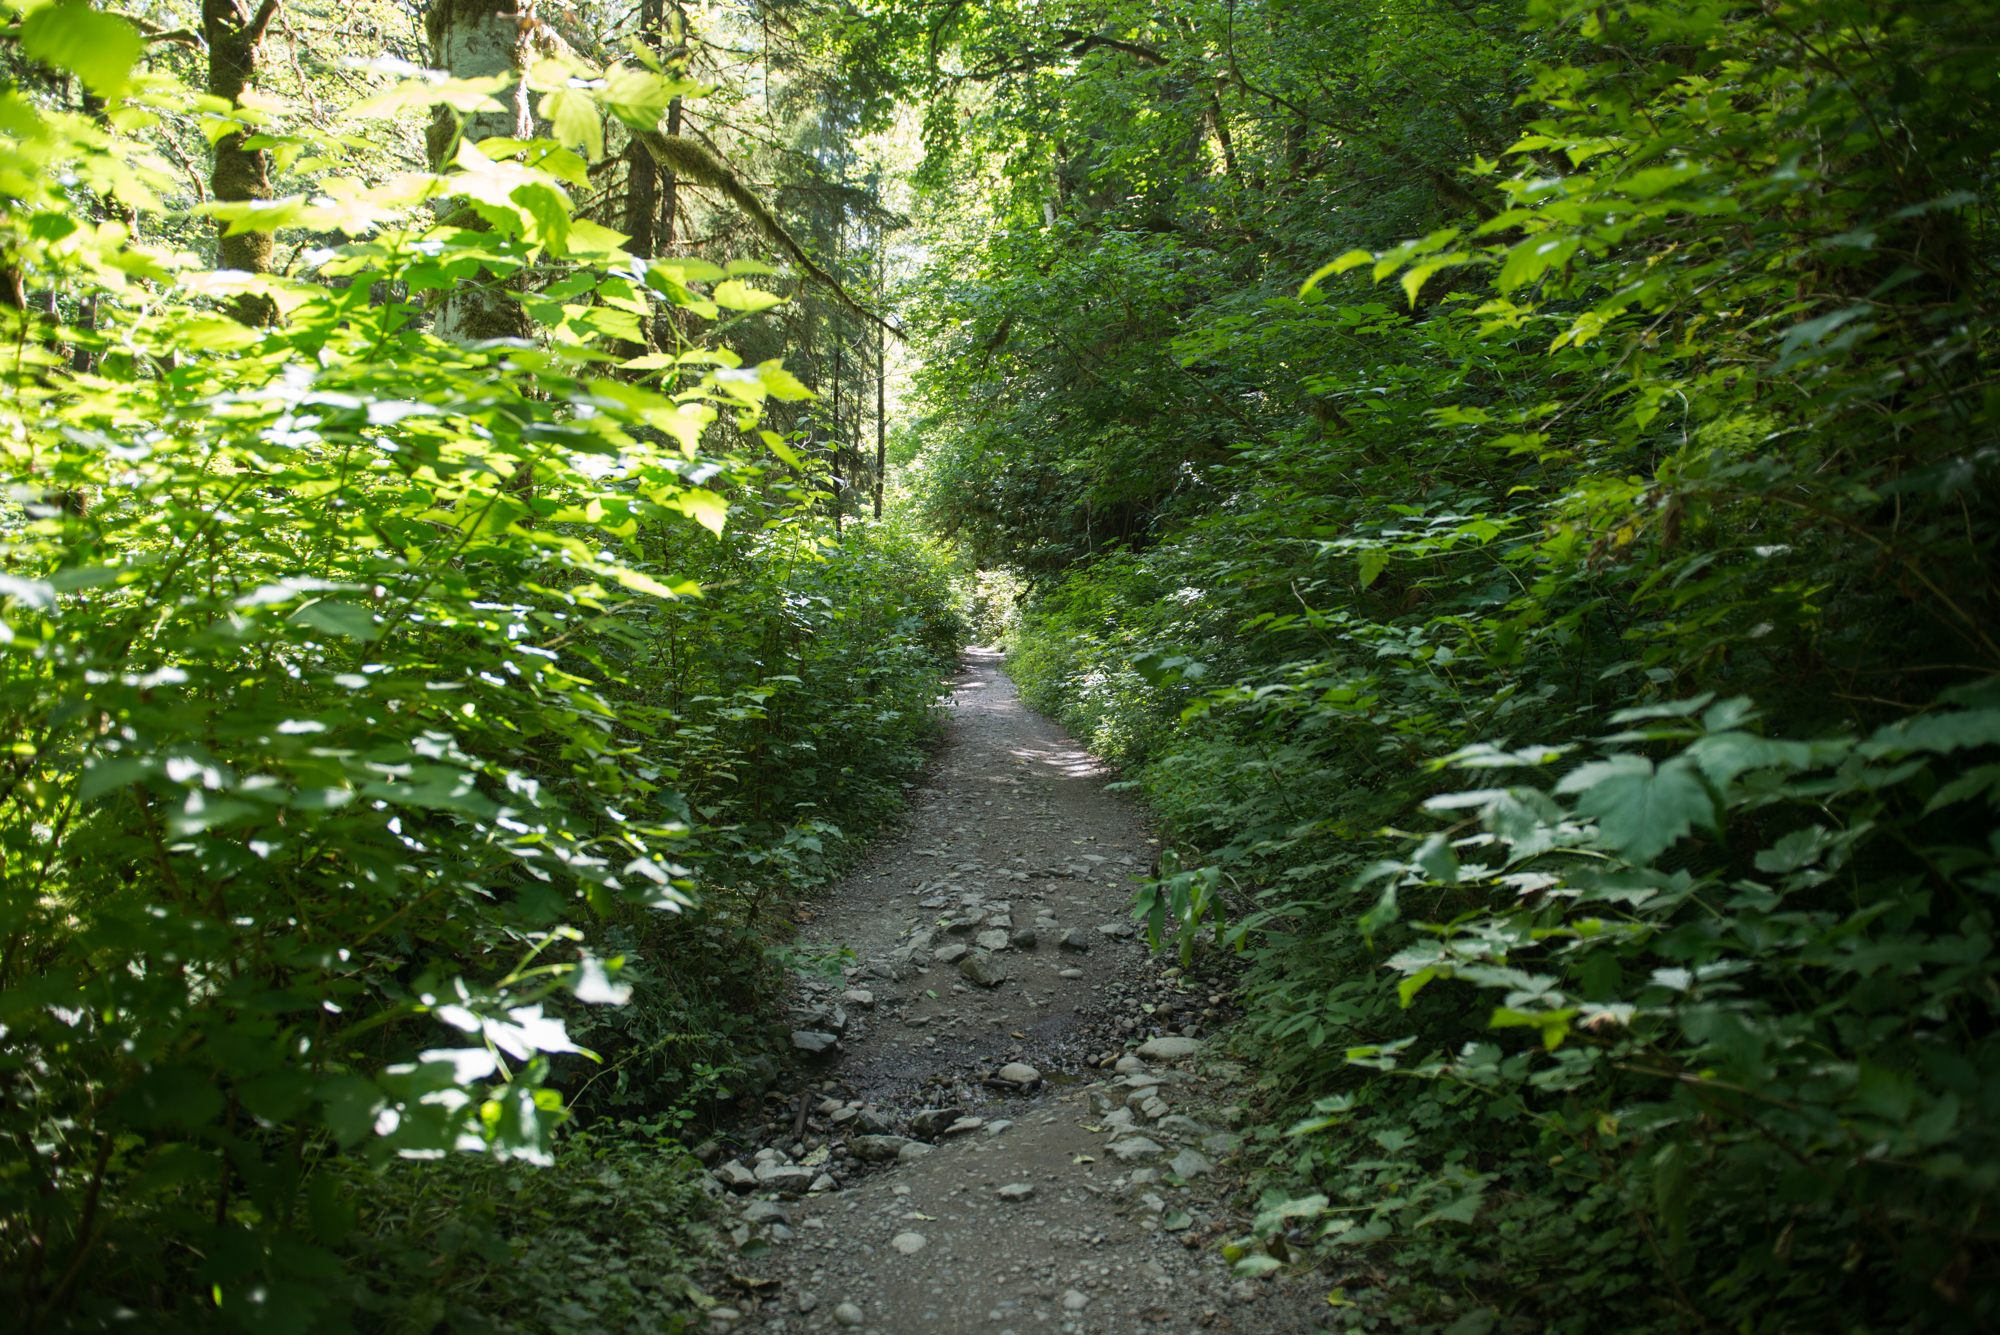 Fun fact: the trailhead for a hike that will straight up transport you to Ferngully is just under 60 miles northwest of Seattle.  It's two miles to the 1,328 foot waterfall from the parking lot (four miles roundtrip) and rest assured you will be in awe. The waterfall flows from the aptly named Lake Serene and streams down a 100 foot rock face in a strong, yet languid manner (could it be a metaphor for love?!) that can only be described as a bridal veil. You'll feel like a million bucks with the falls gently spraying your face after the journey, which starts off easy but increases in difficulty a bit as you ascend to the last quarter mile of the hike. We took the hike last week, click on for photos! (Image: Chona Kasinger / Seattle Refined)